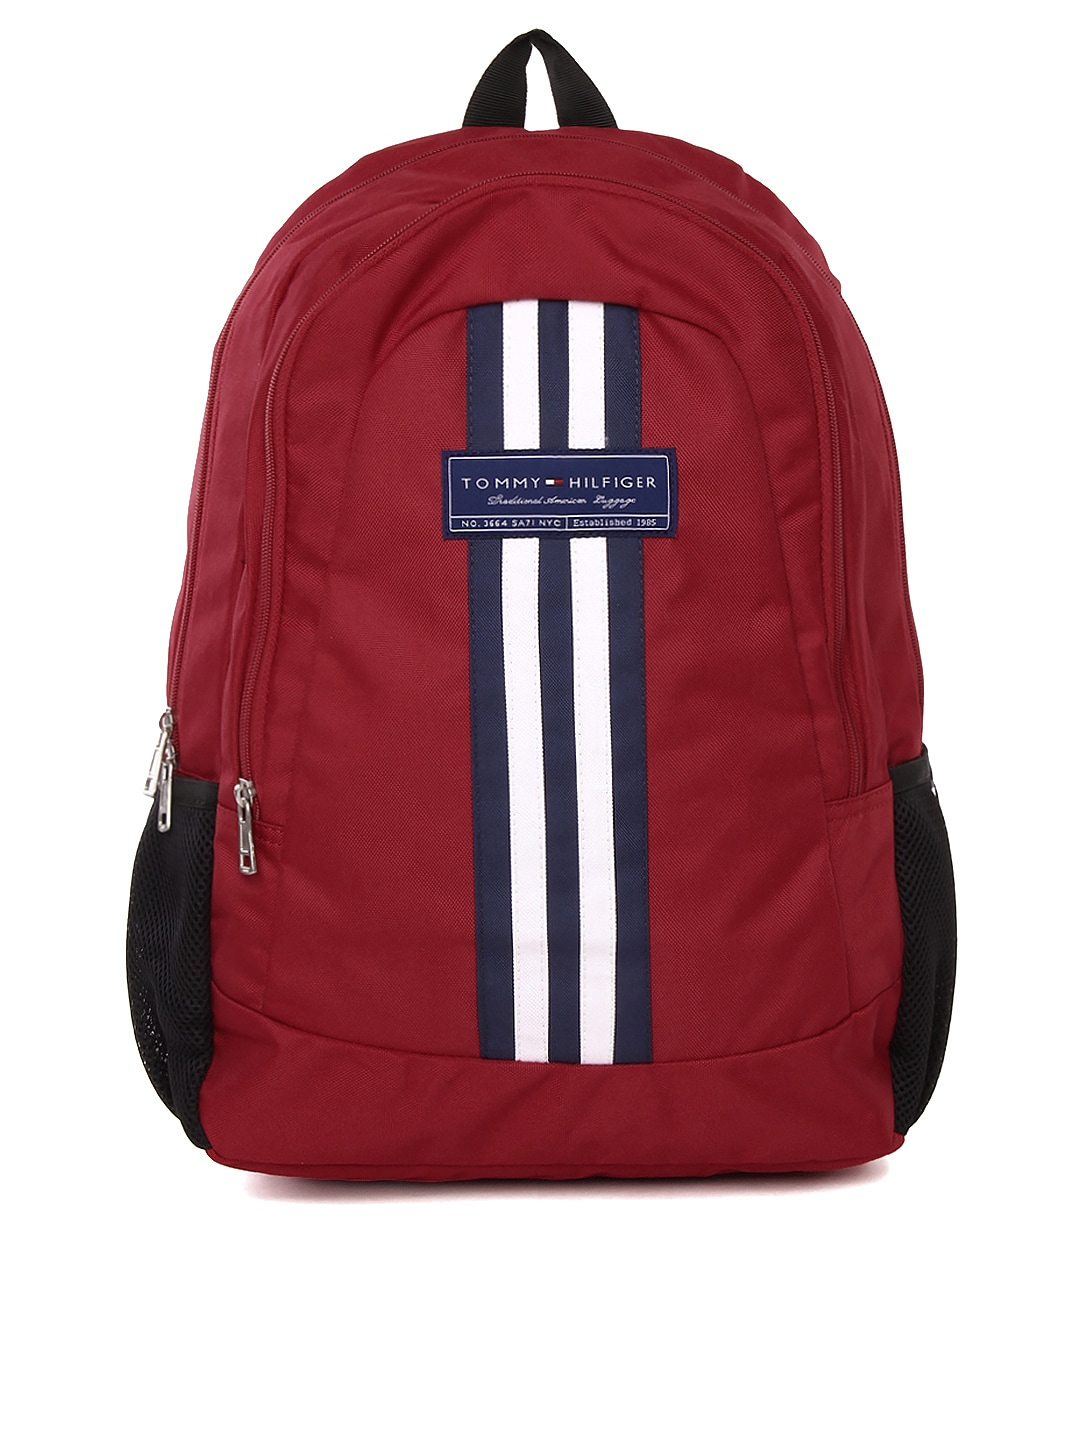 2bf7a6151 Tommy Hilfiger Unisex Red Biker Club Stapleton Backpack Price in India 04  Jul 2019 | Compare Tommy Hilfiger Unisex Red Biker Club Stapleton Backpack  Price ...